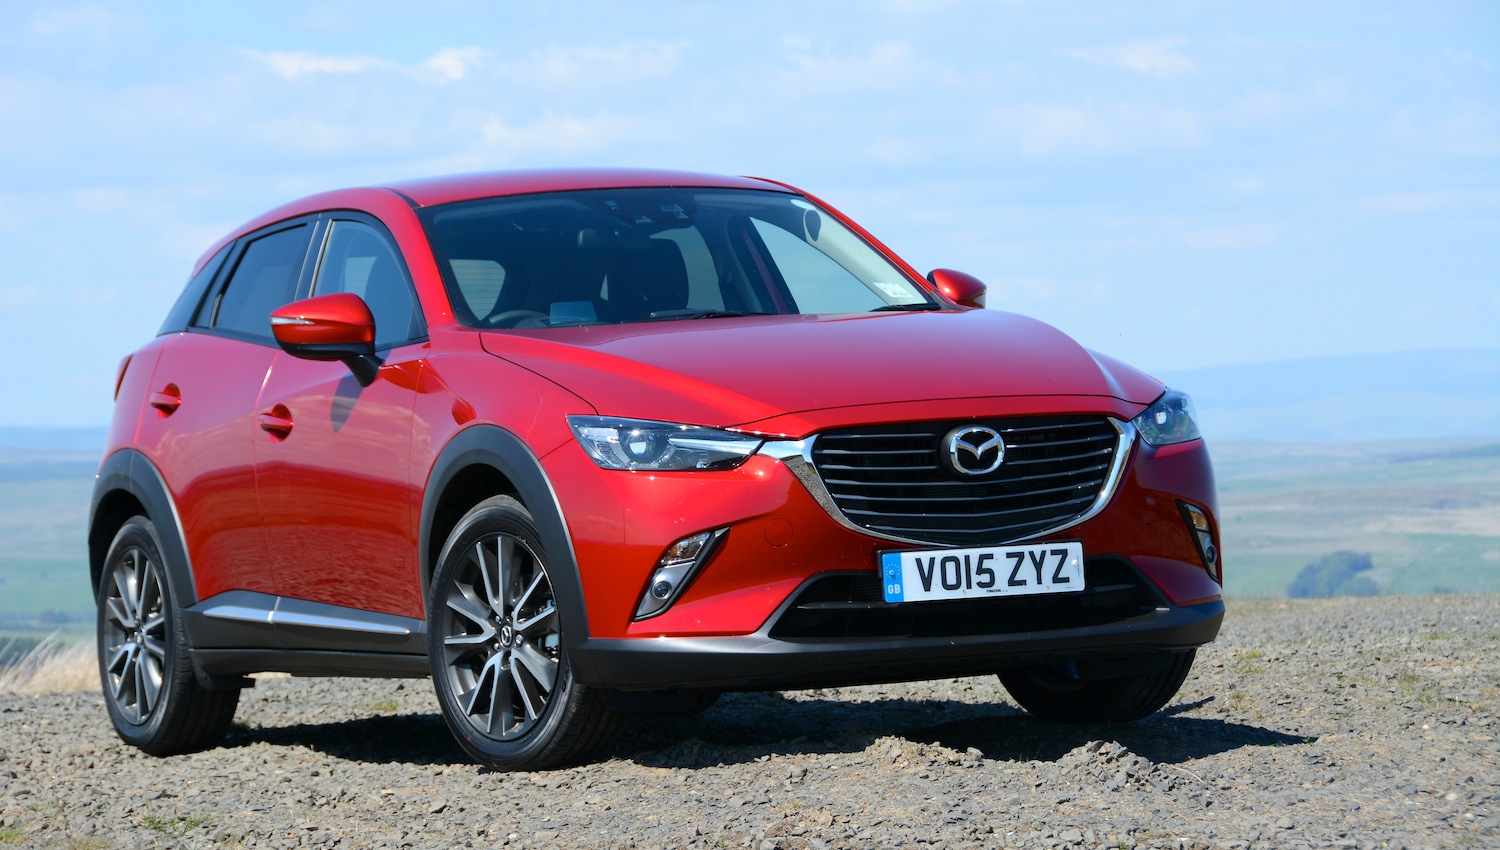 mazda cx 3 1 5 skyactiv d diesel 2wd review. Black Bedroom Furniture Sets. Home Design Ideas